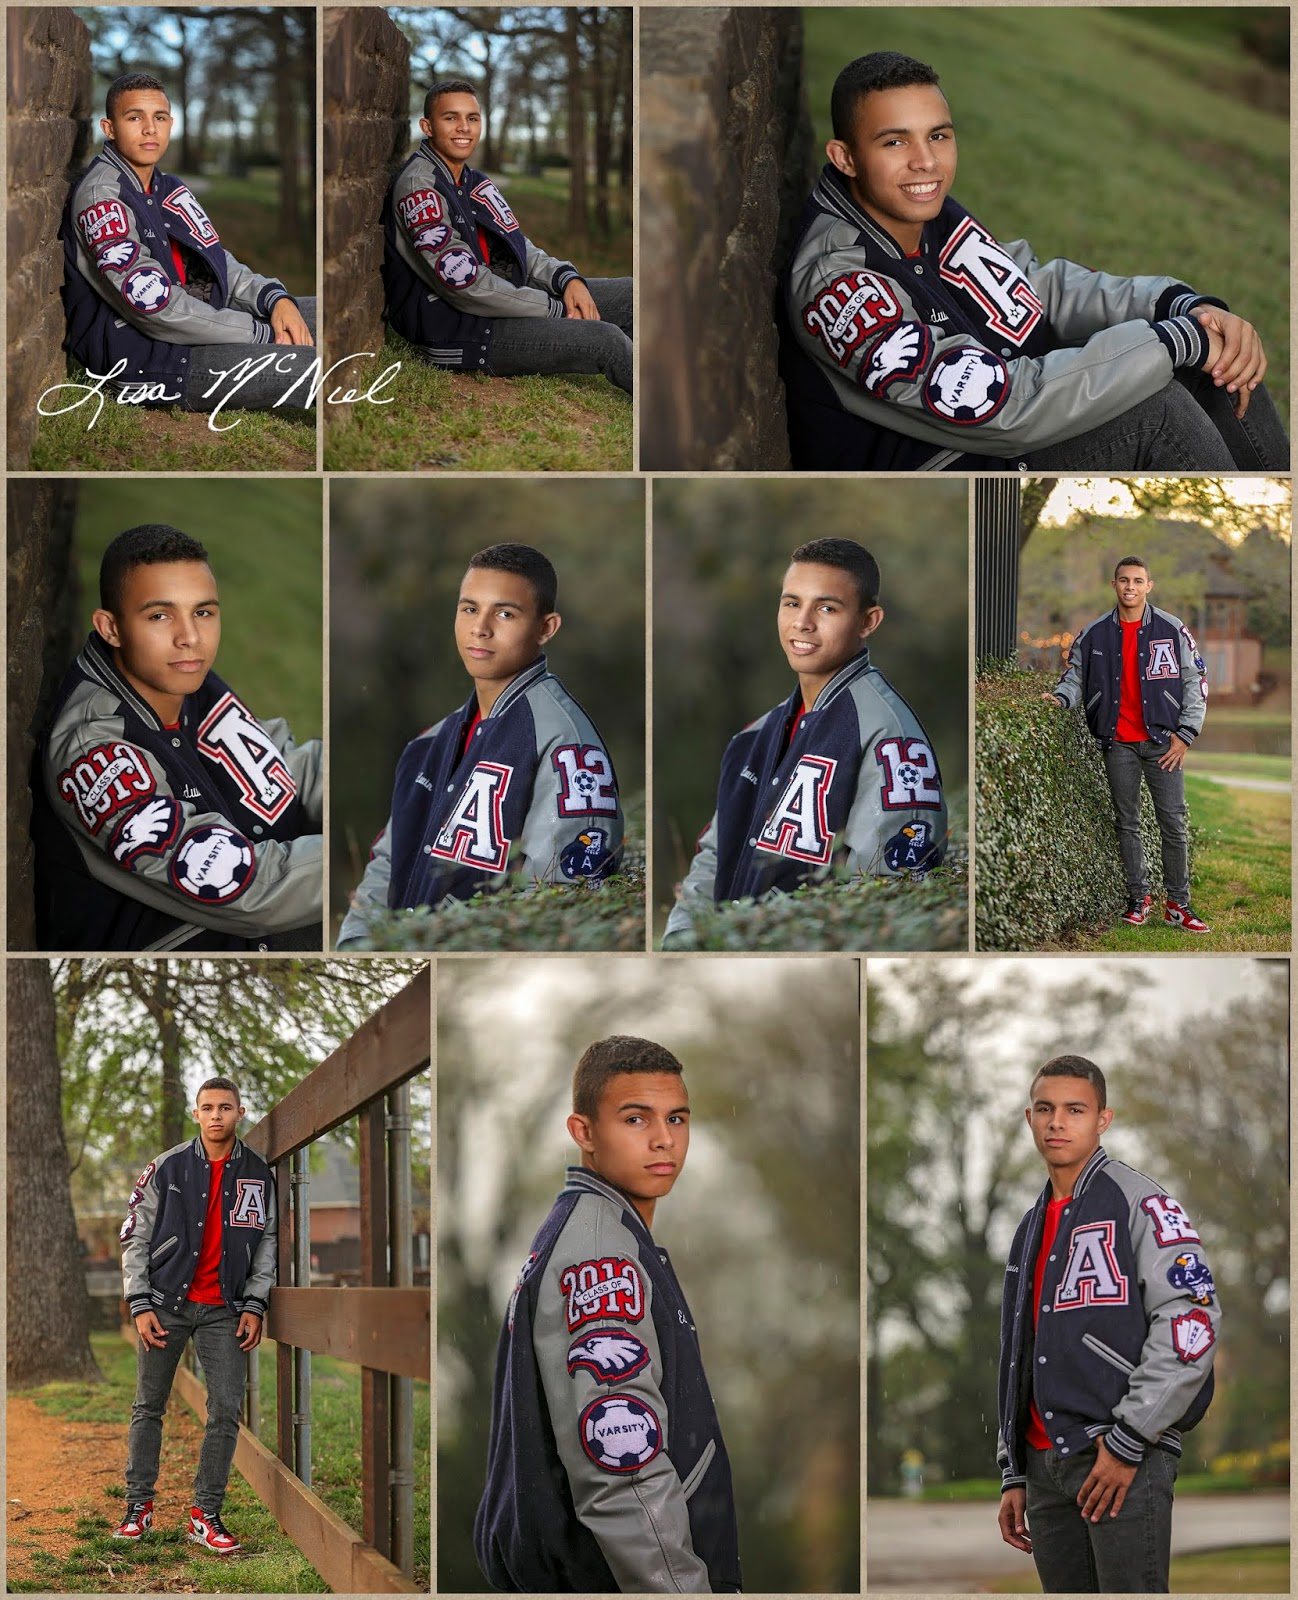 teen boy in letter jacket poses